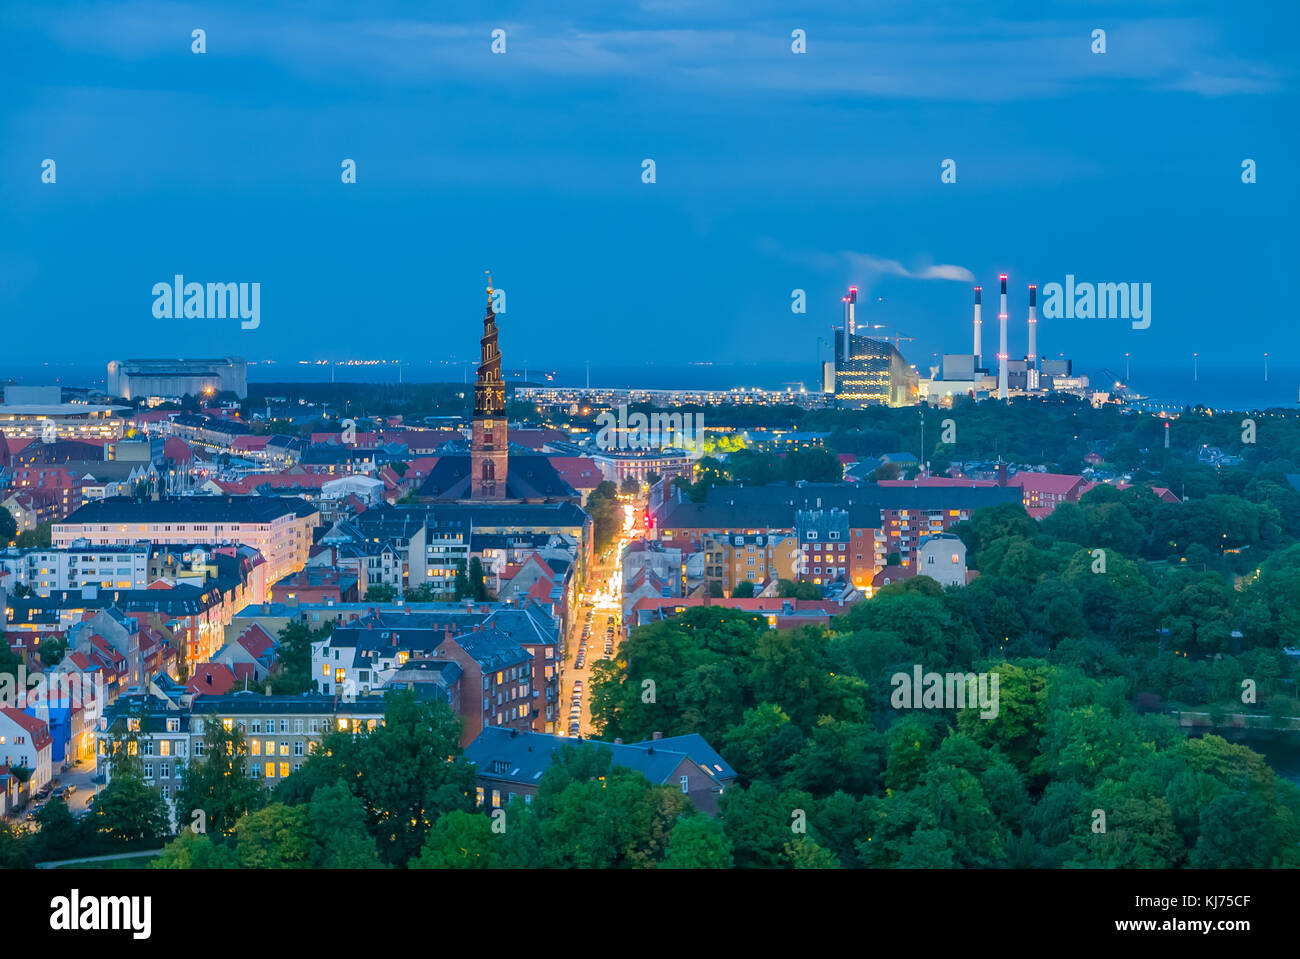 Smart city, renewable energy from biogas plant and wind turbines for the capital of Denmark, Copenhagen - Stock Image